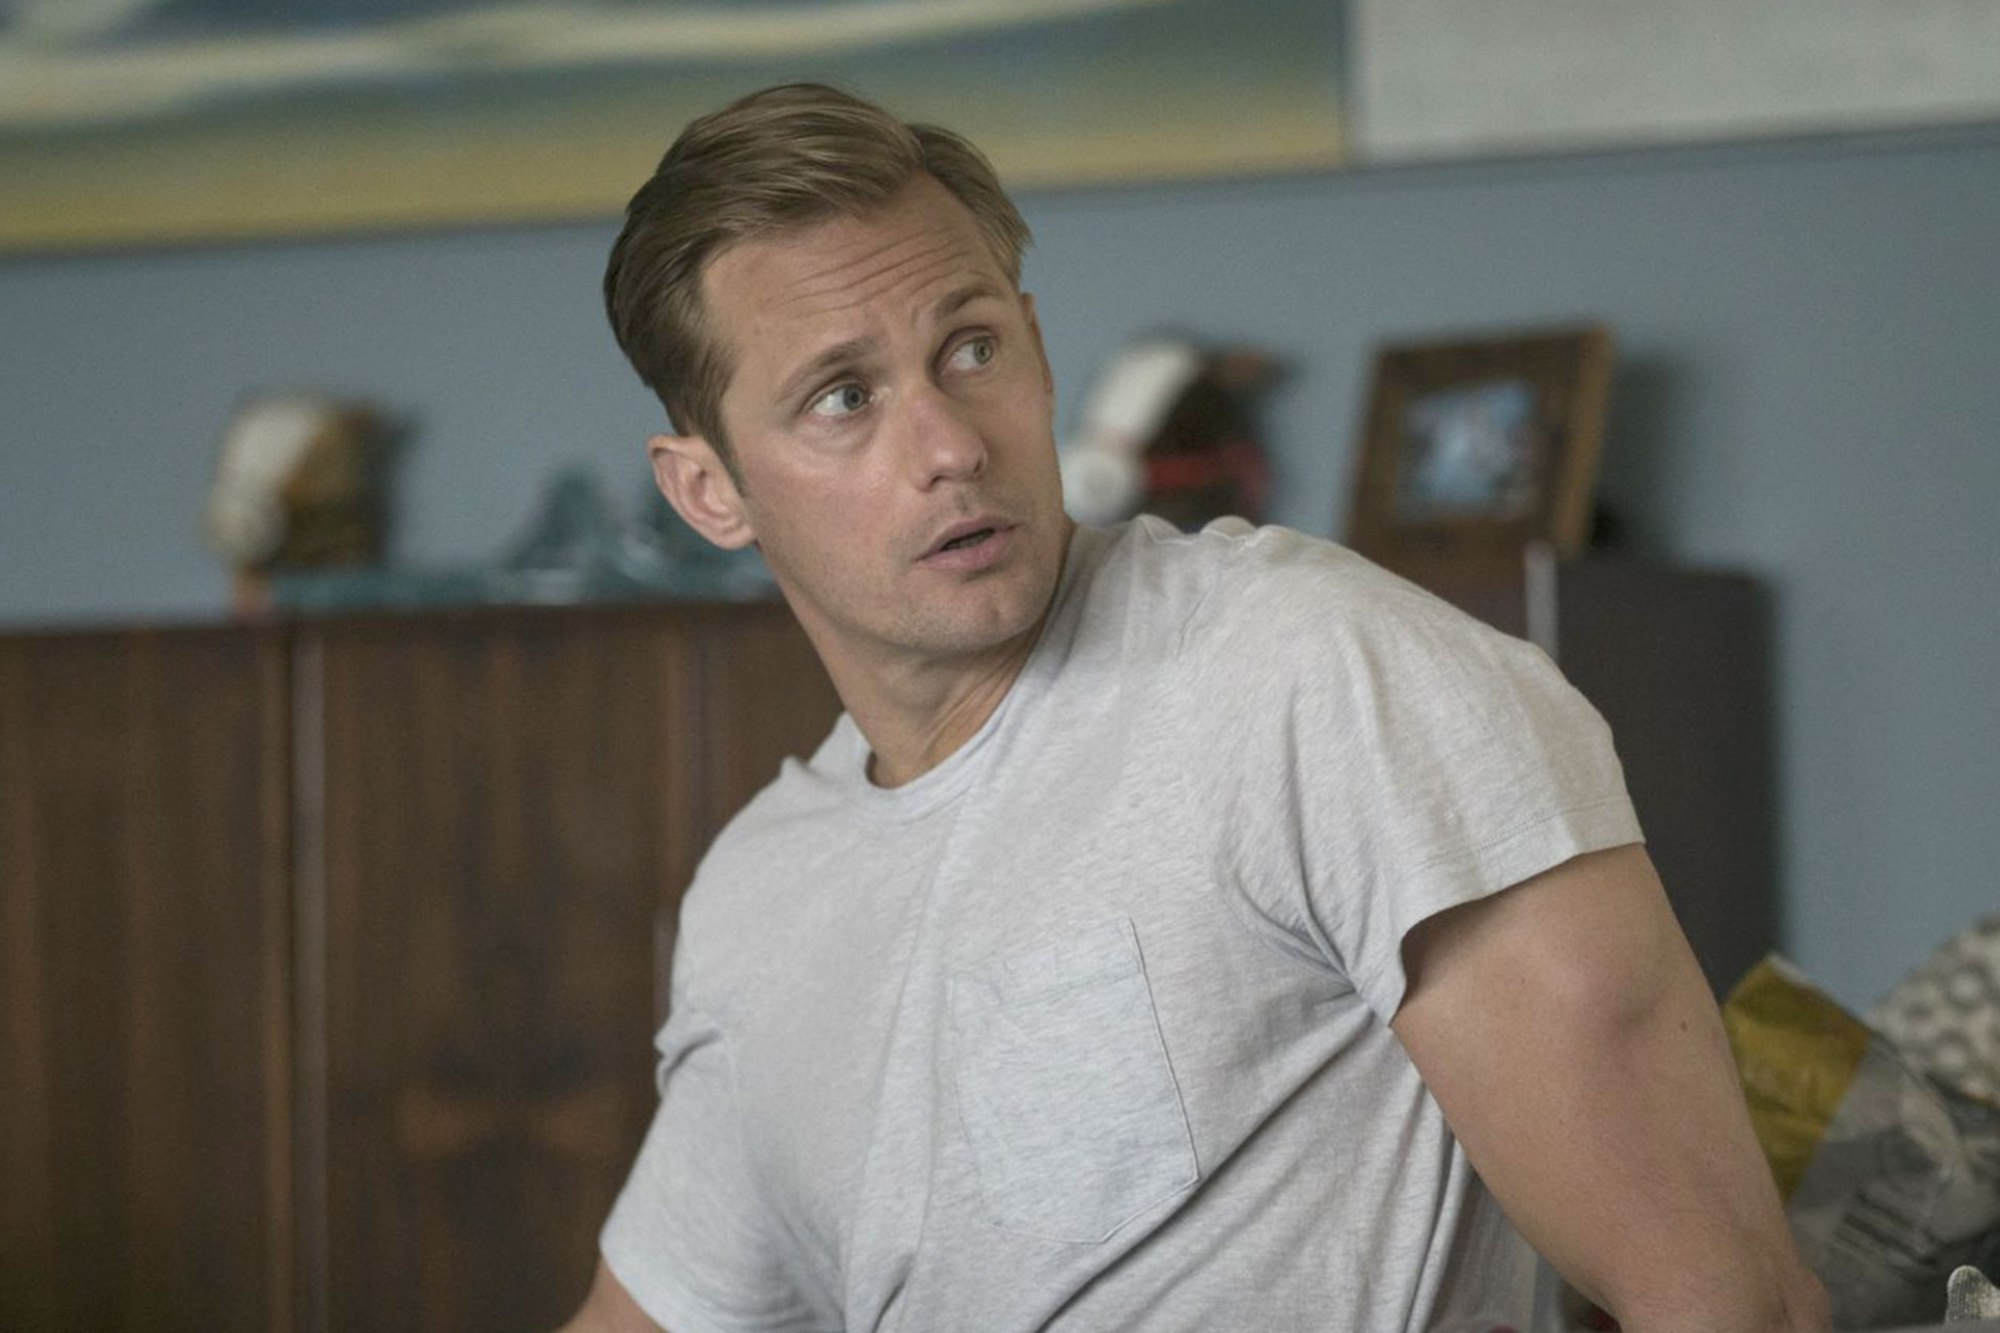 MAN CANDY: Alexander Skarsgard's Full Frontal Scene on 'BIG Little Lies' [NSFW]